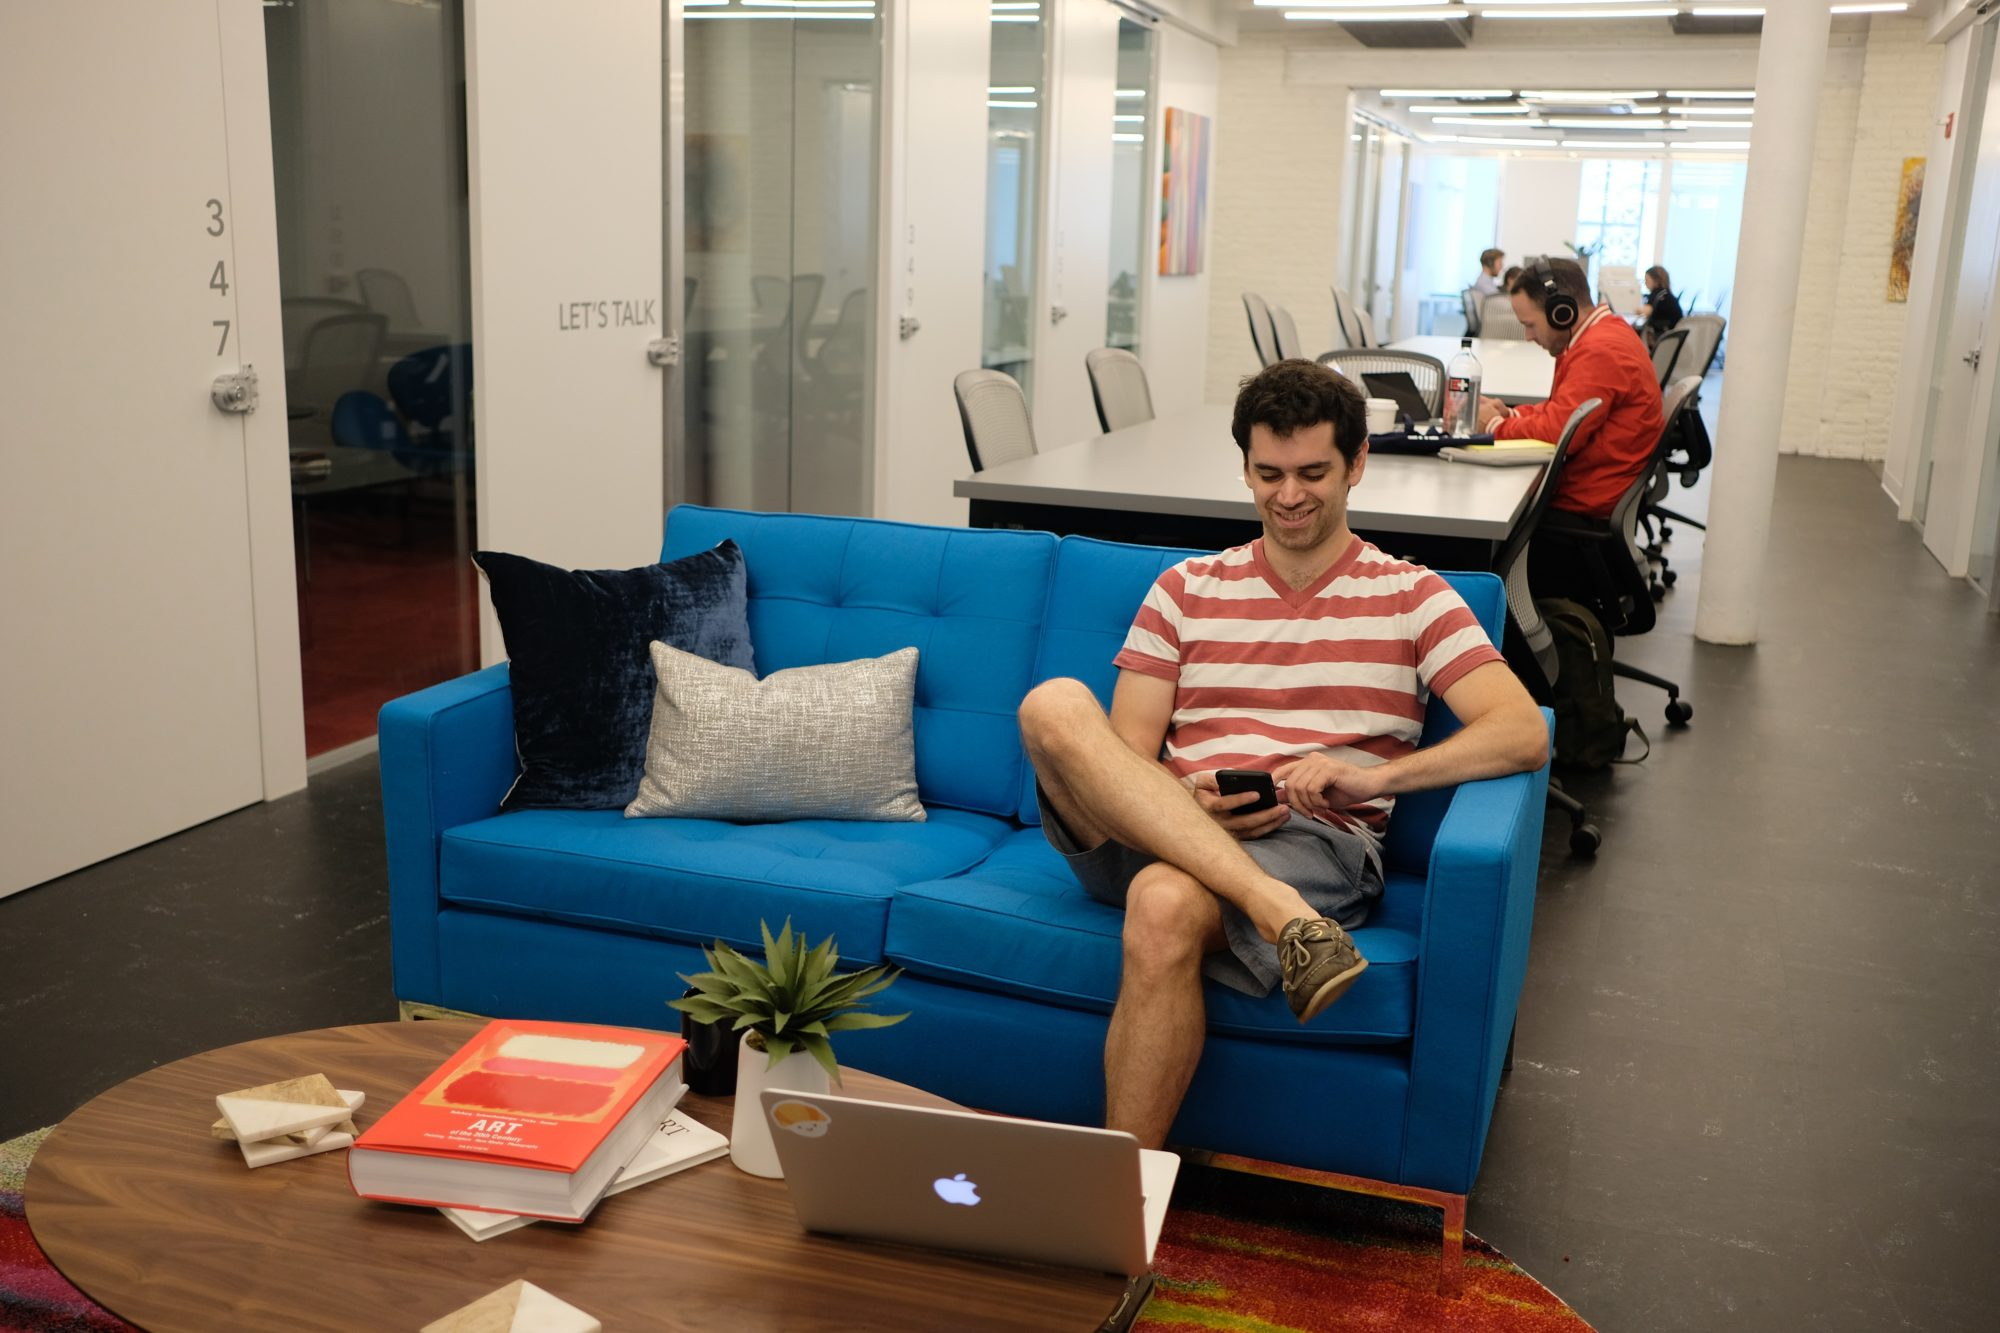 man sitting on blue couch in coworking space